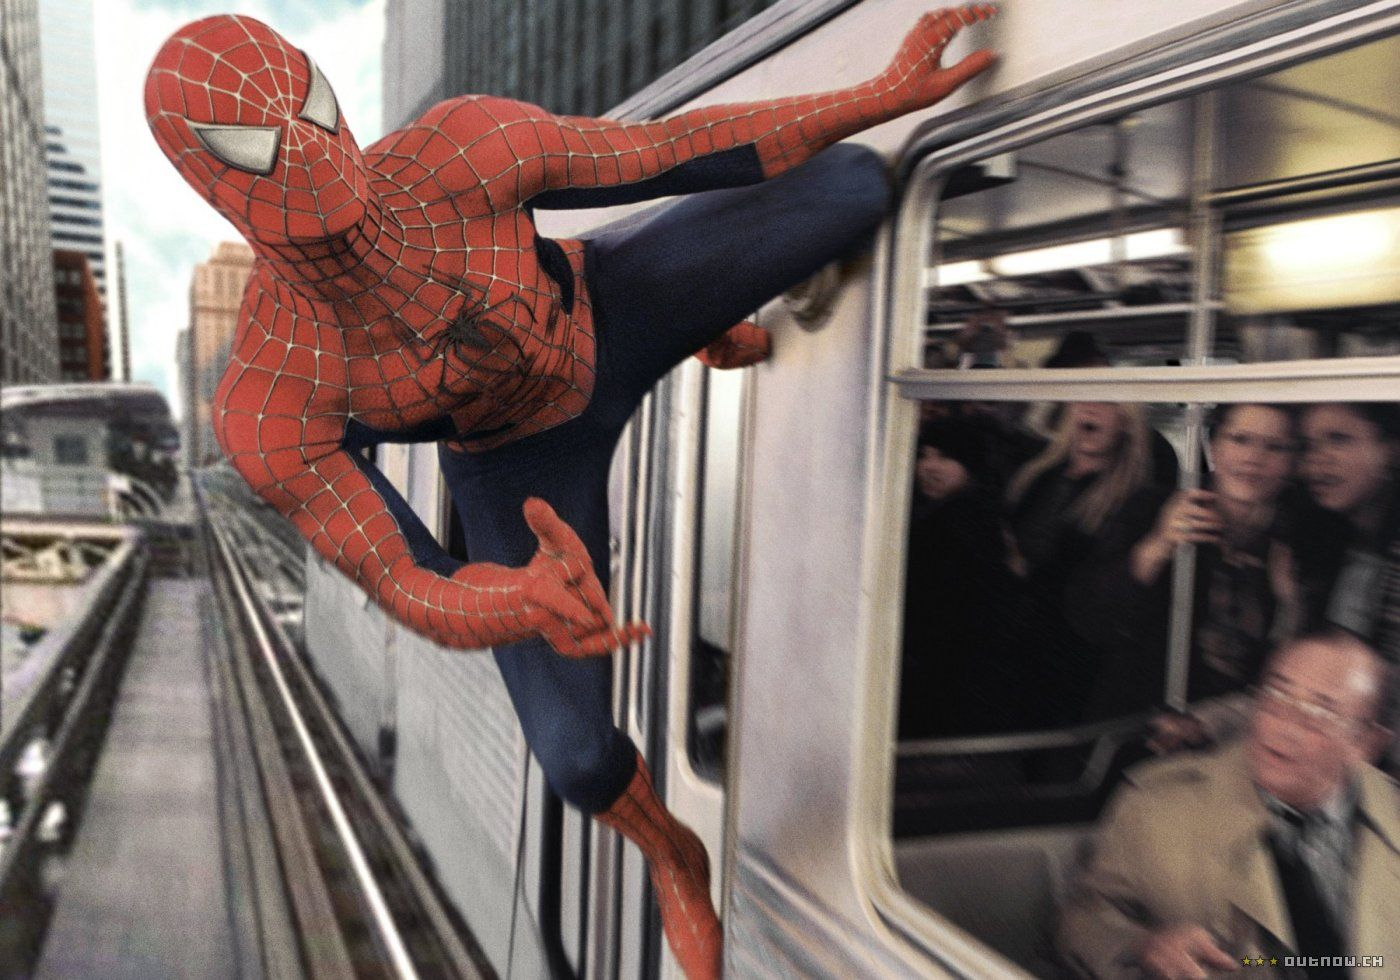 spider-man_movie_image_02.jpg